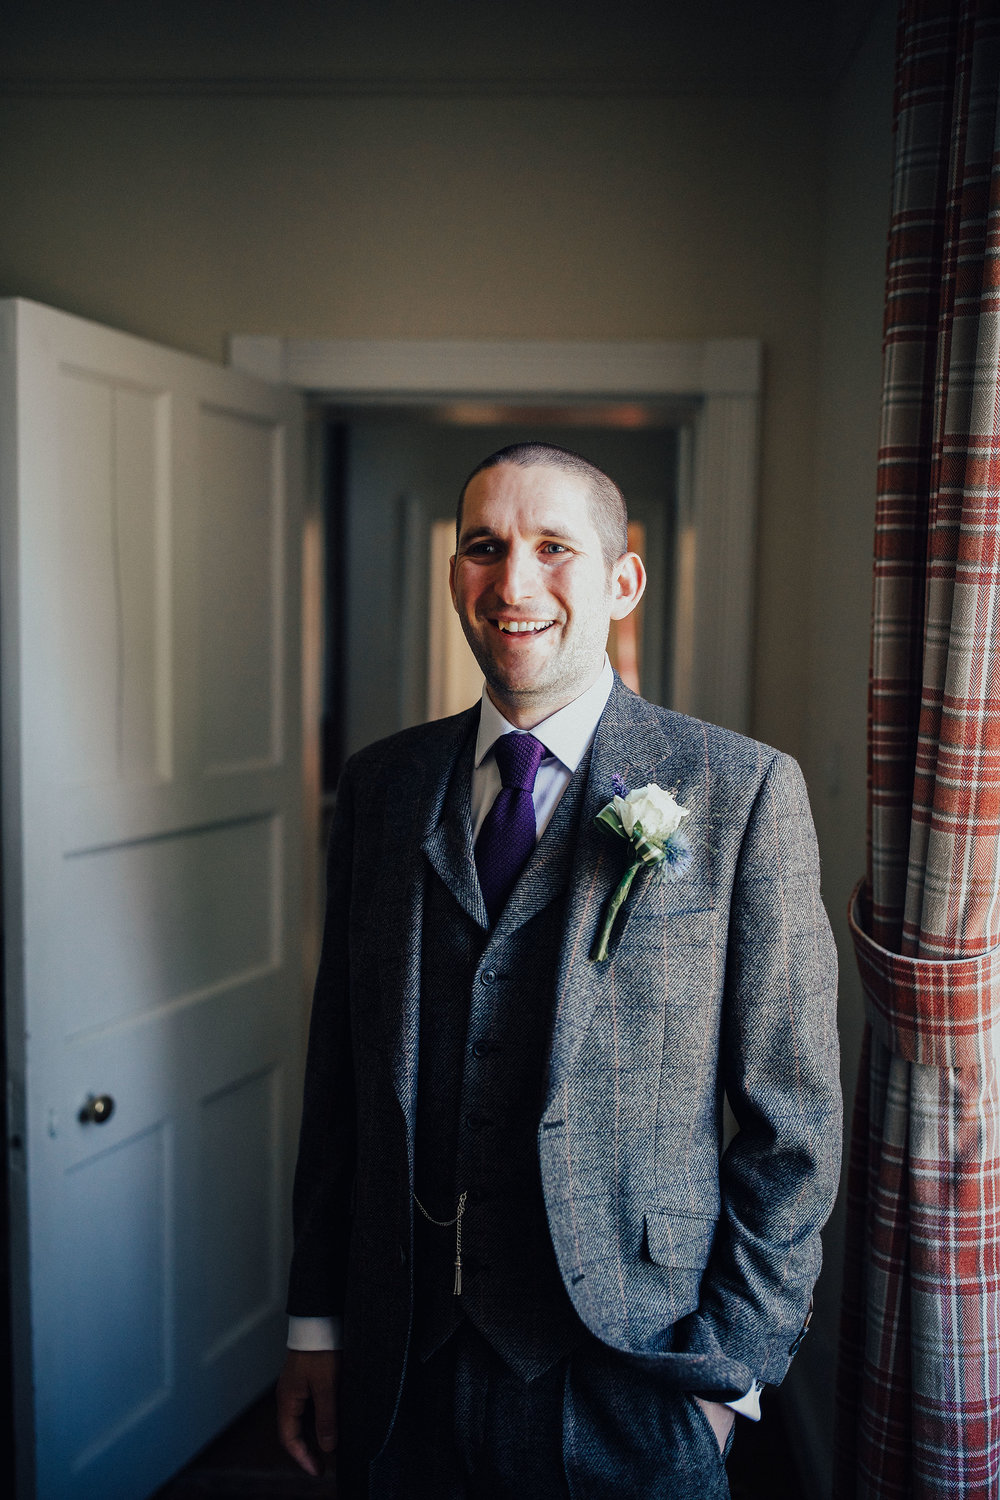 SCOTTISH_ELOPEMENT_PHOTOGRAPHER_PJ_PHILLIPS_PHOTOGRAPHY_33.jpg